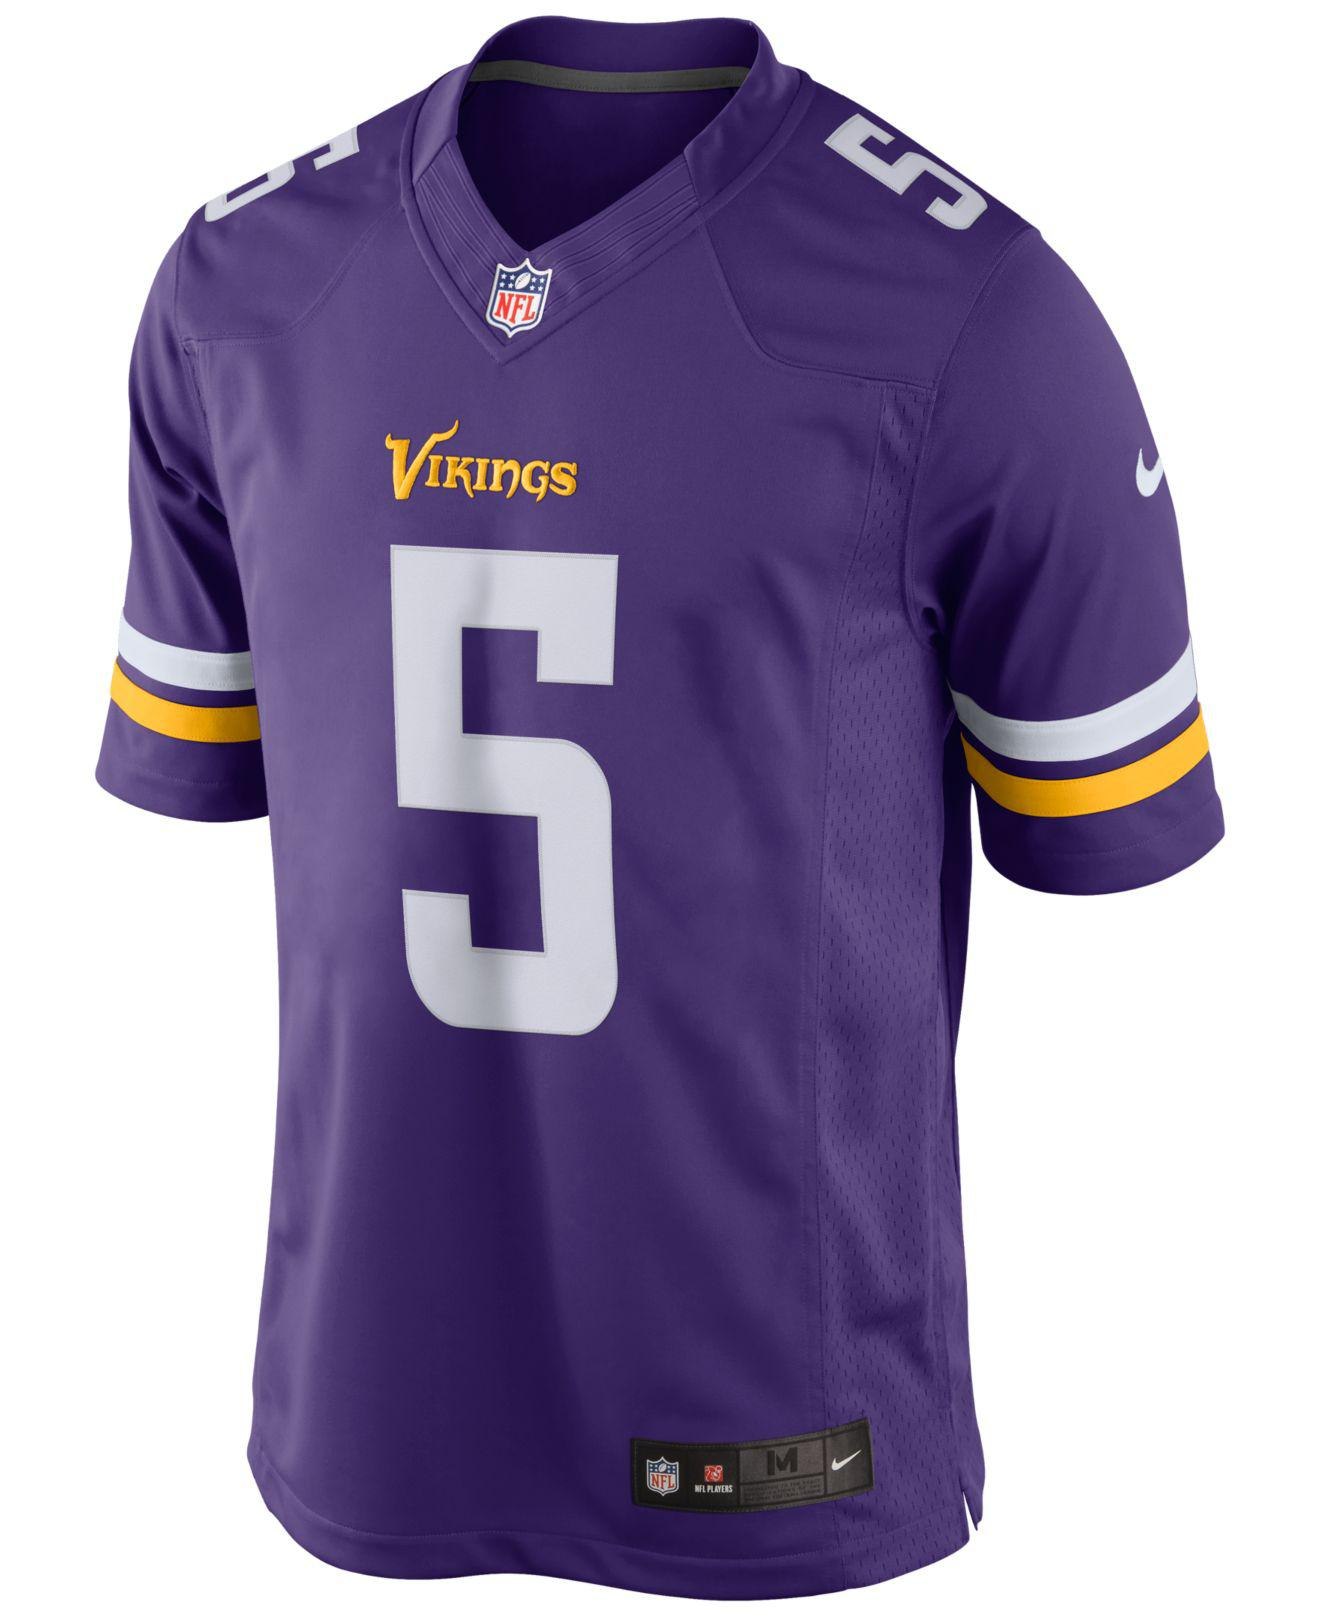 b25ba0d20 Lyst - Nike Men s Teddy Bridgewater Minnesota Vikings Limited Jersey in  Purple for Men